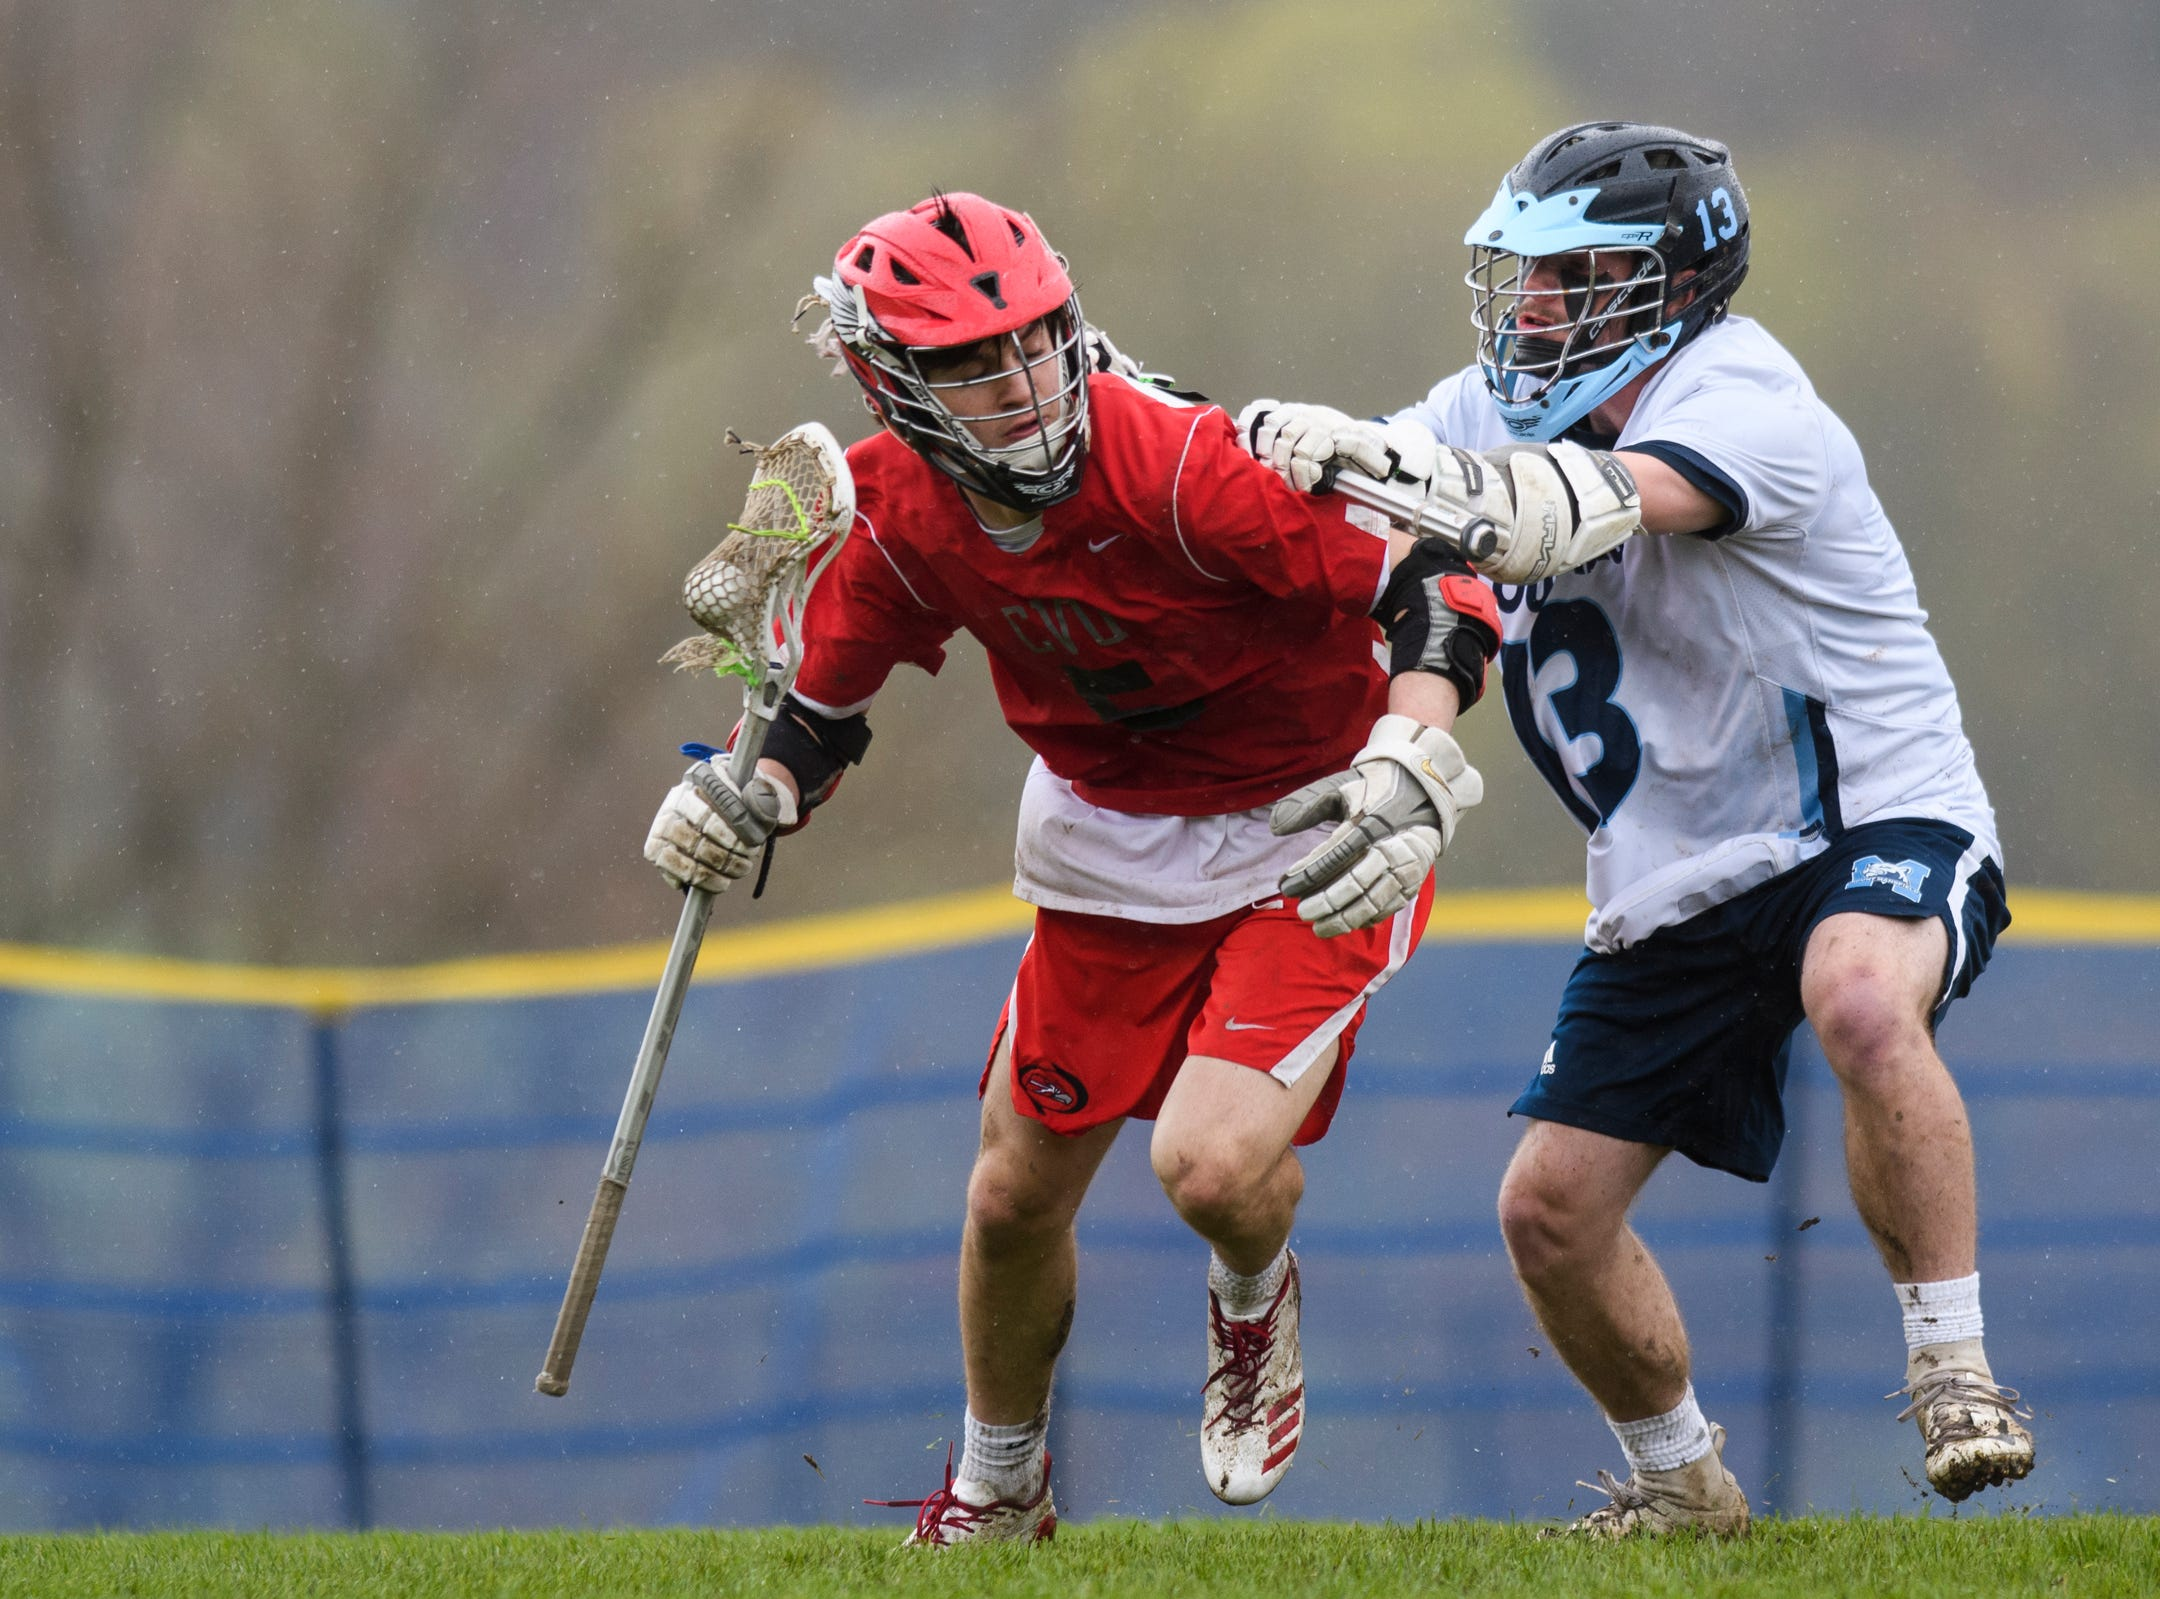 MMU's Dylan Davis (13) checks CVU's Jake Schaefer (5) during the boys lacrosse game between the Champlain Valley Union Redhawks and the Mount Mansfield Cougars at MMU High School on Tuesday afternoon May 14, 2019 in Jericho, Vermont.